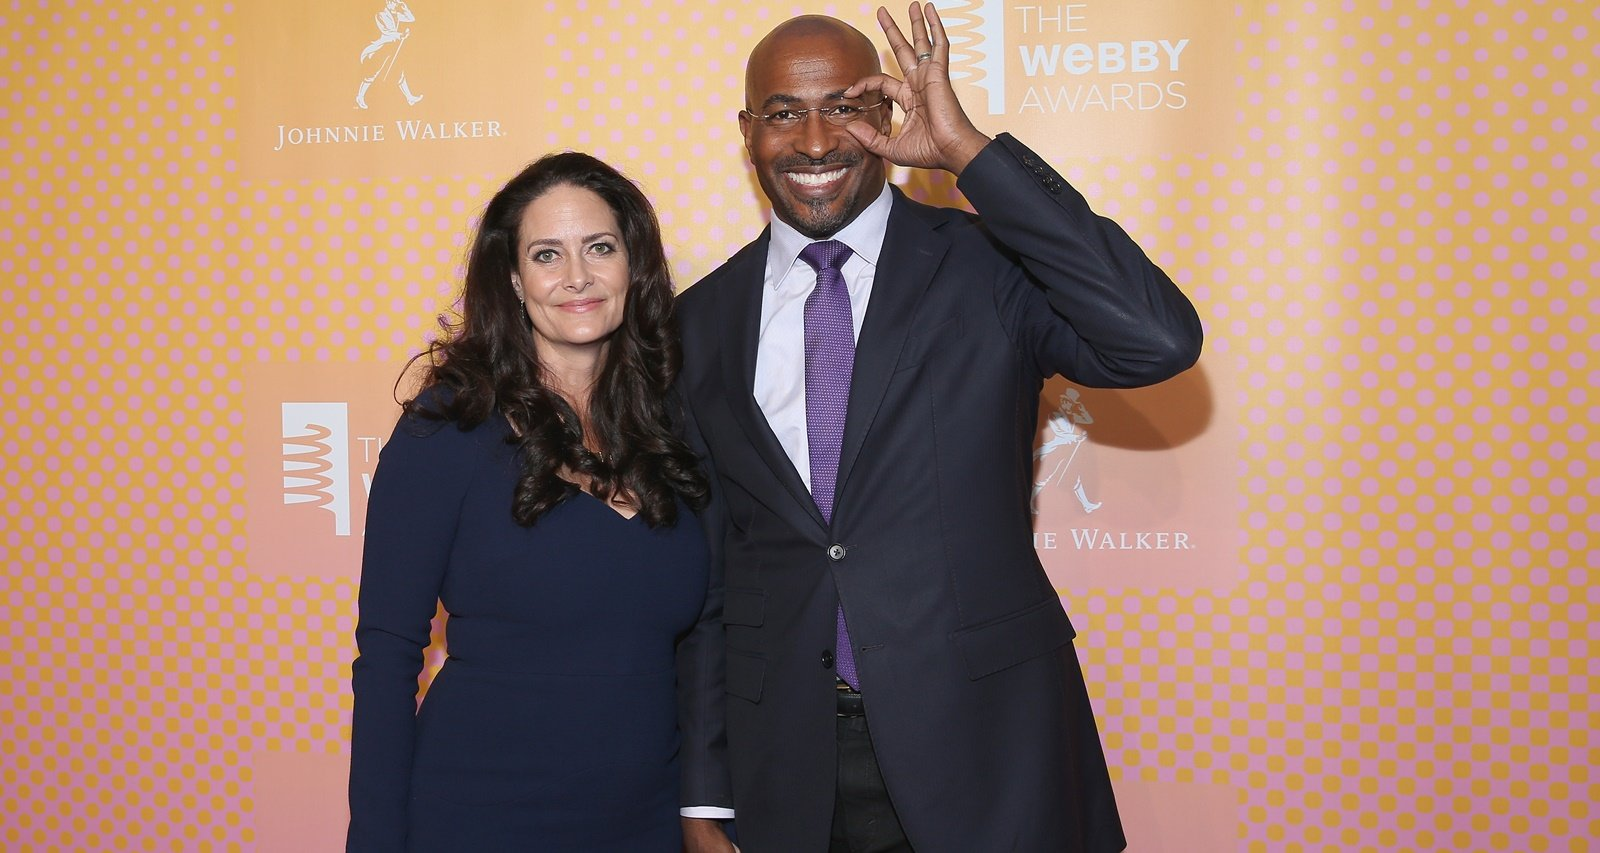 Jana Carter Wiki: Facts about Van Jones' Soon-To-Be Ex-Wife